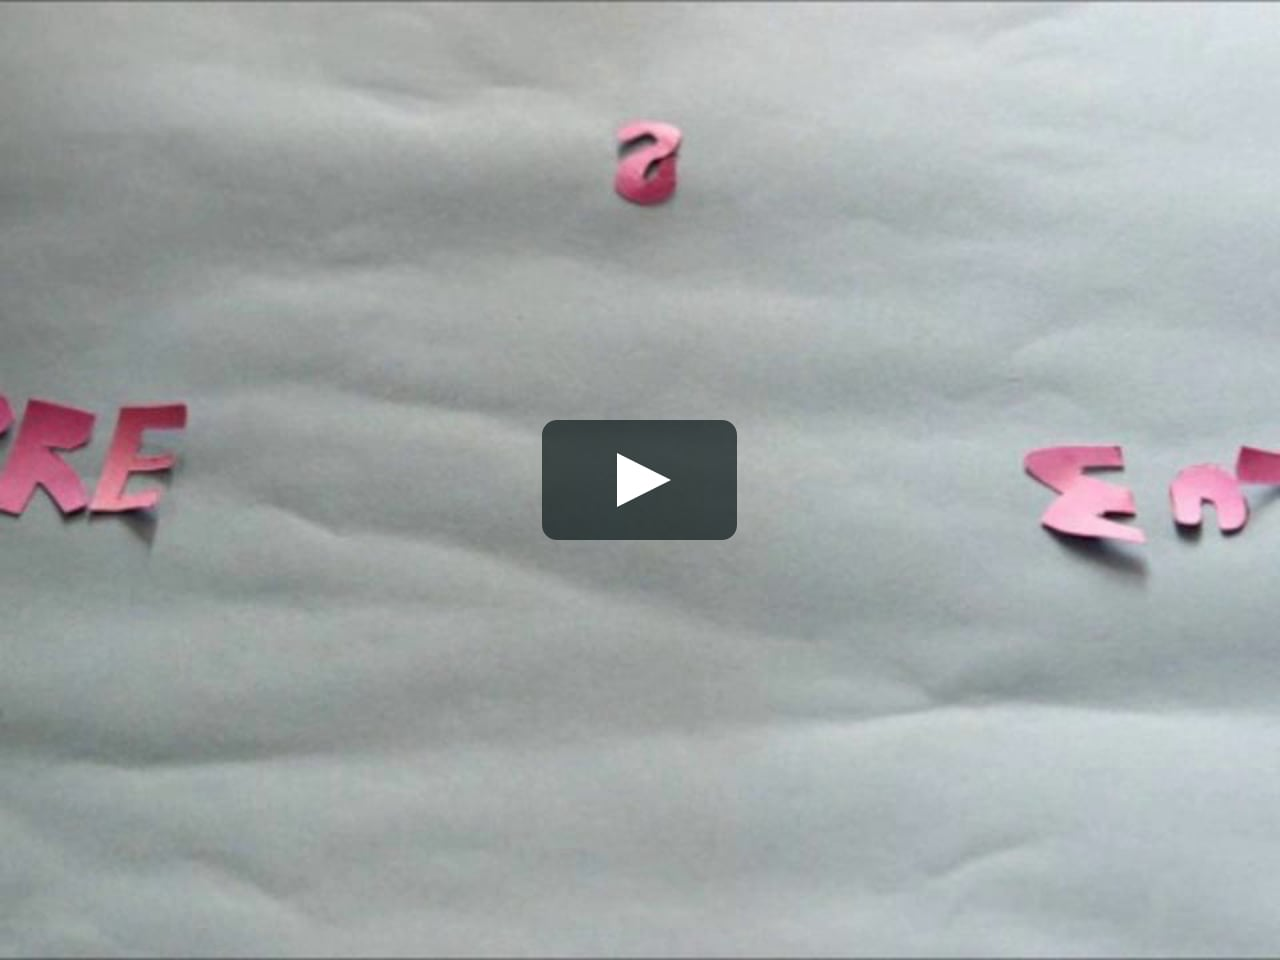 Papercraft paper craft (stop motion) - adulescentia